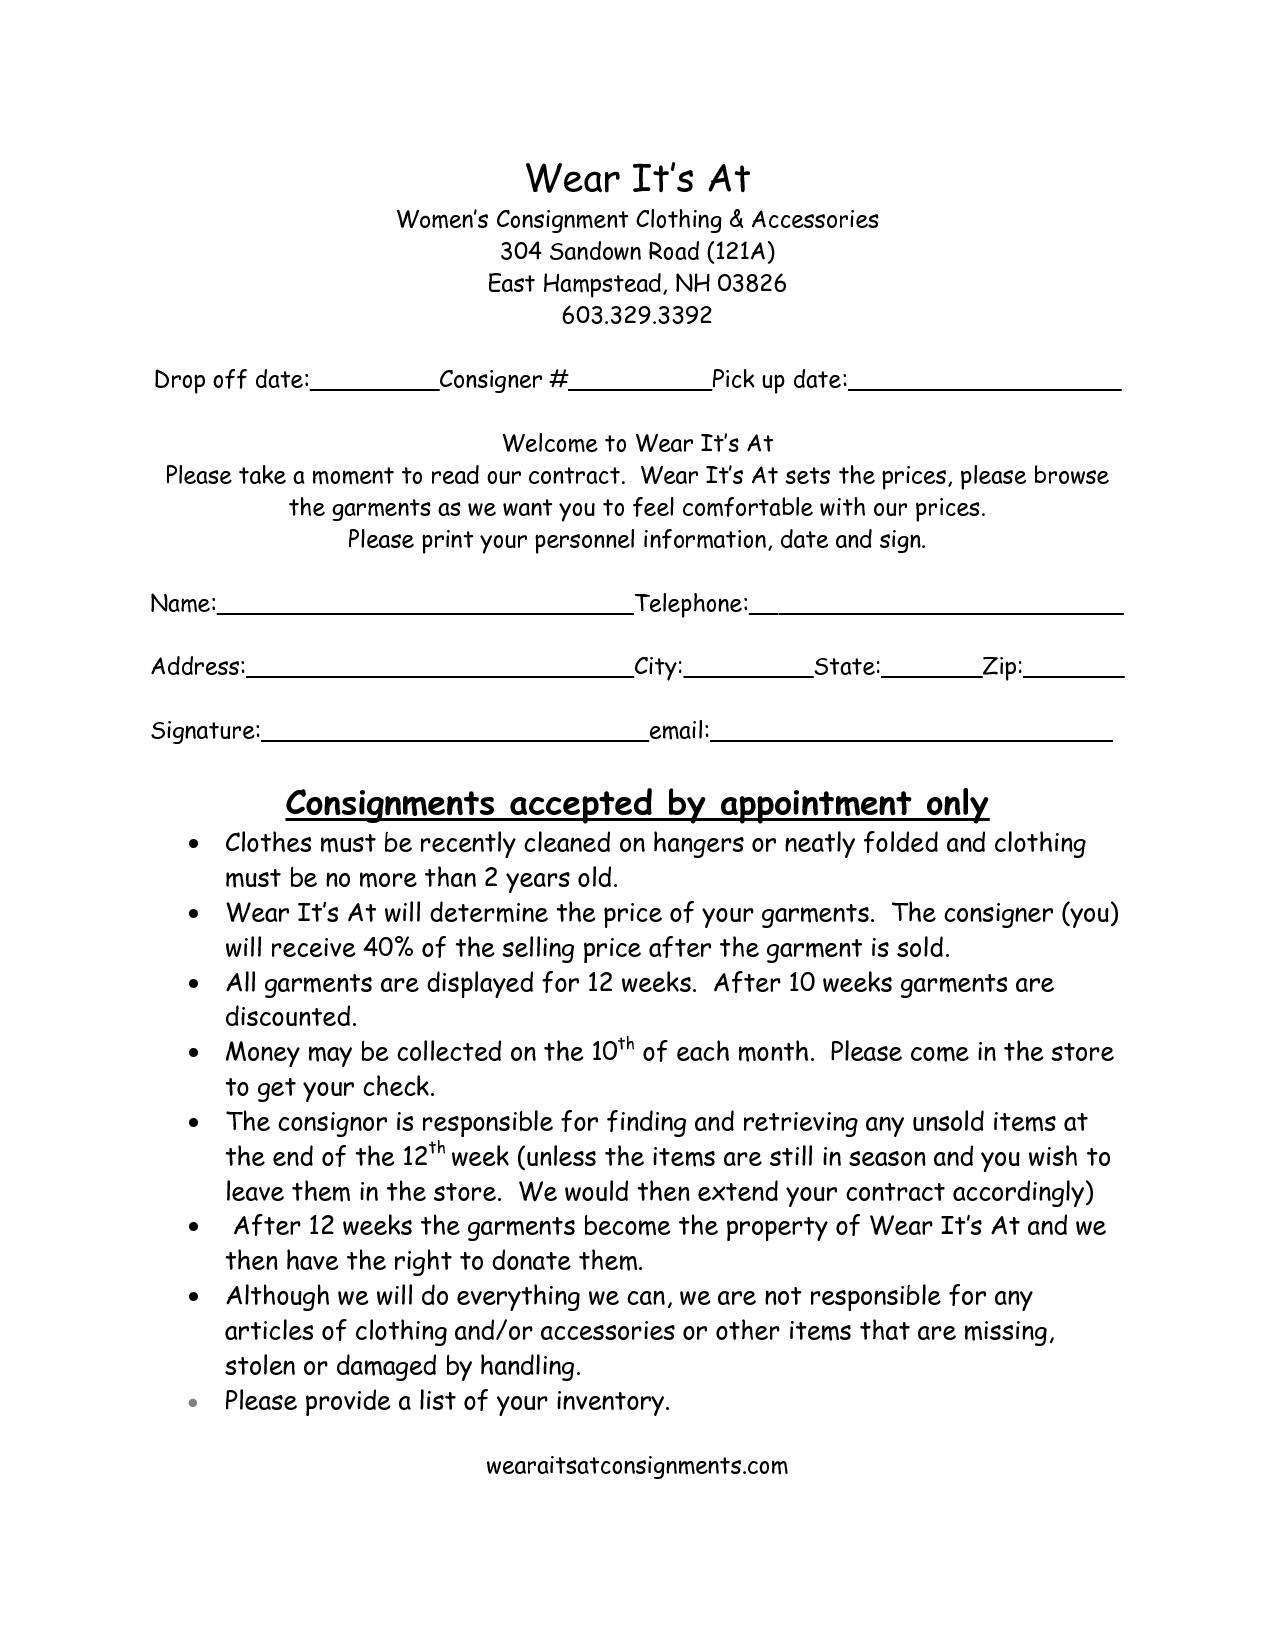 Consignment Contract Samples